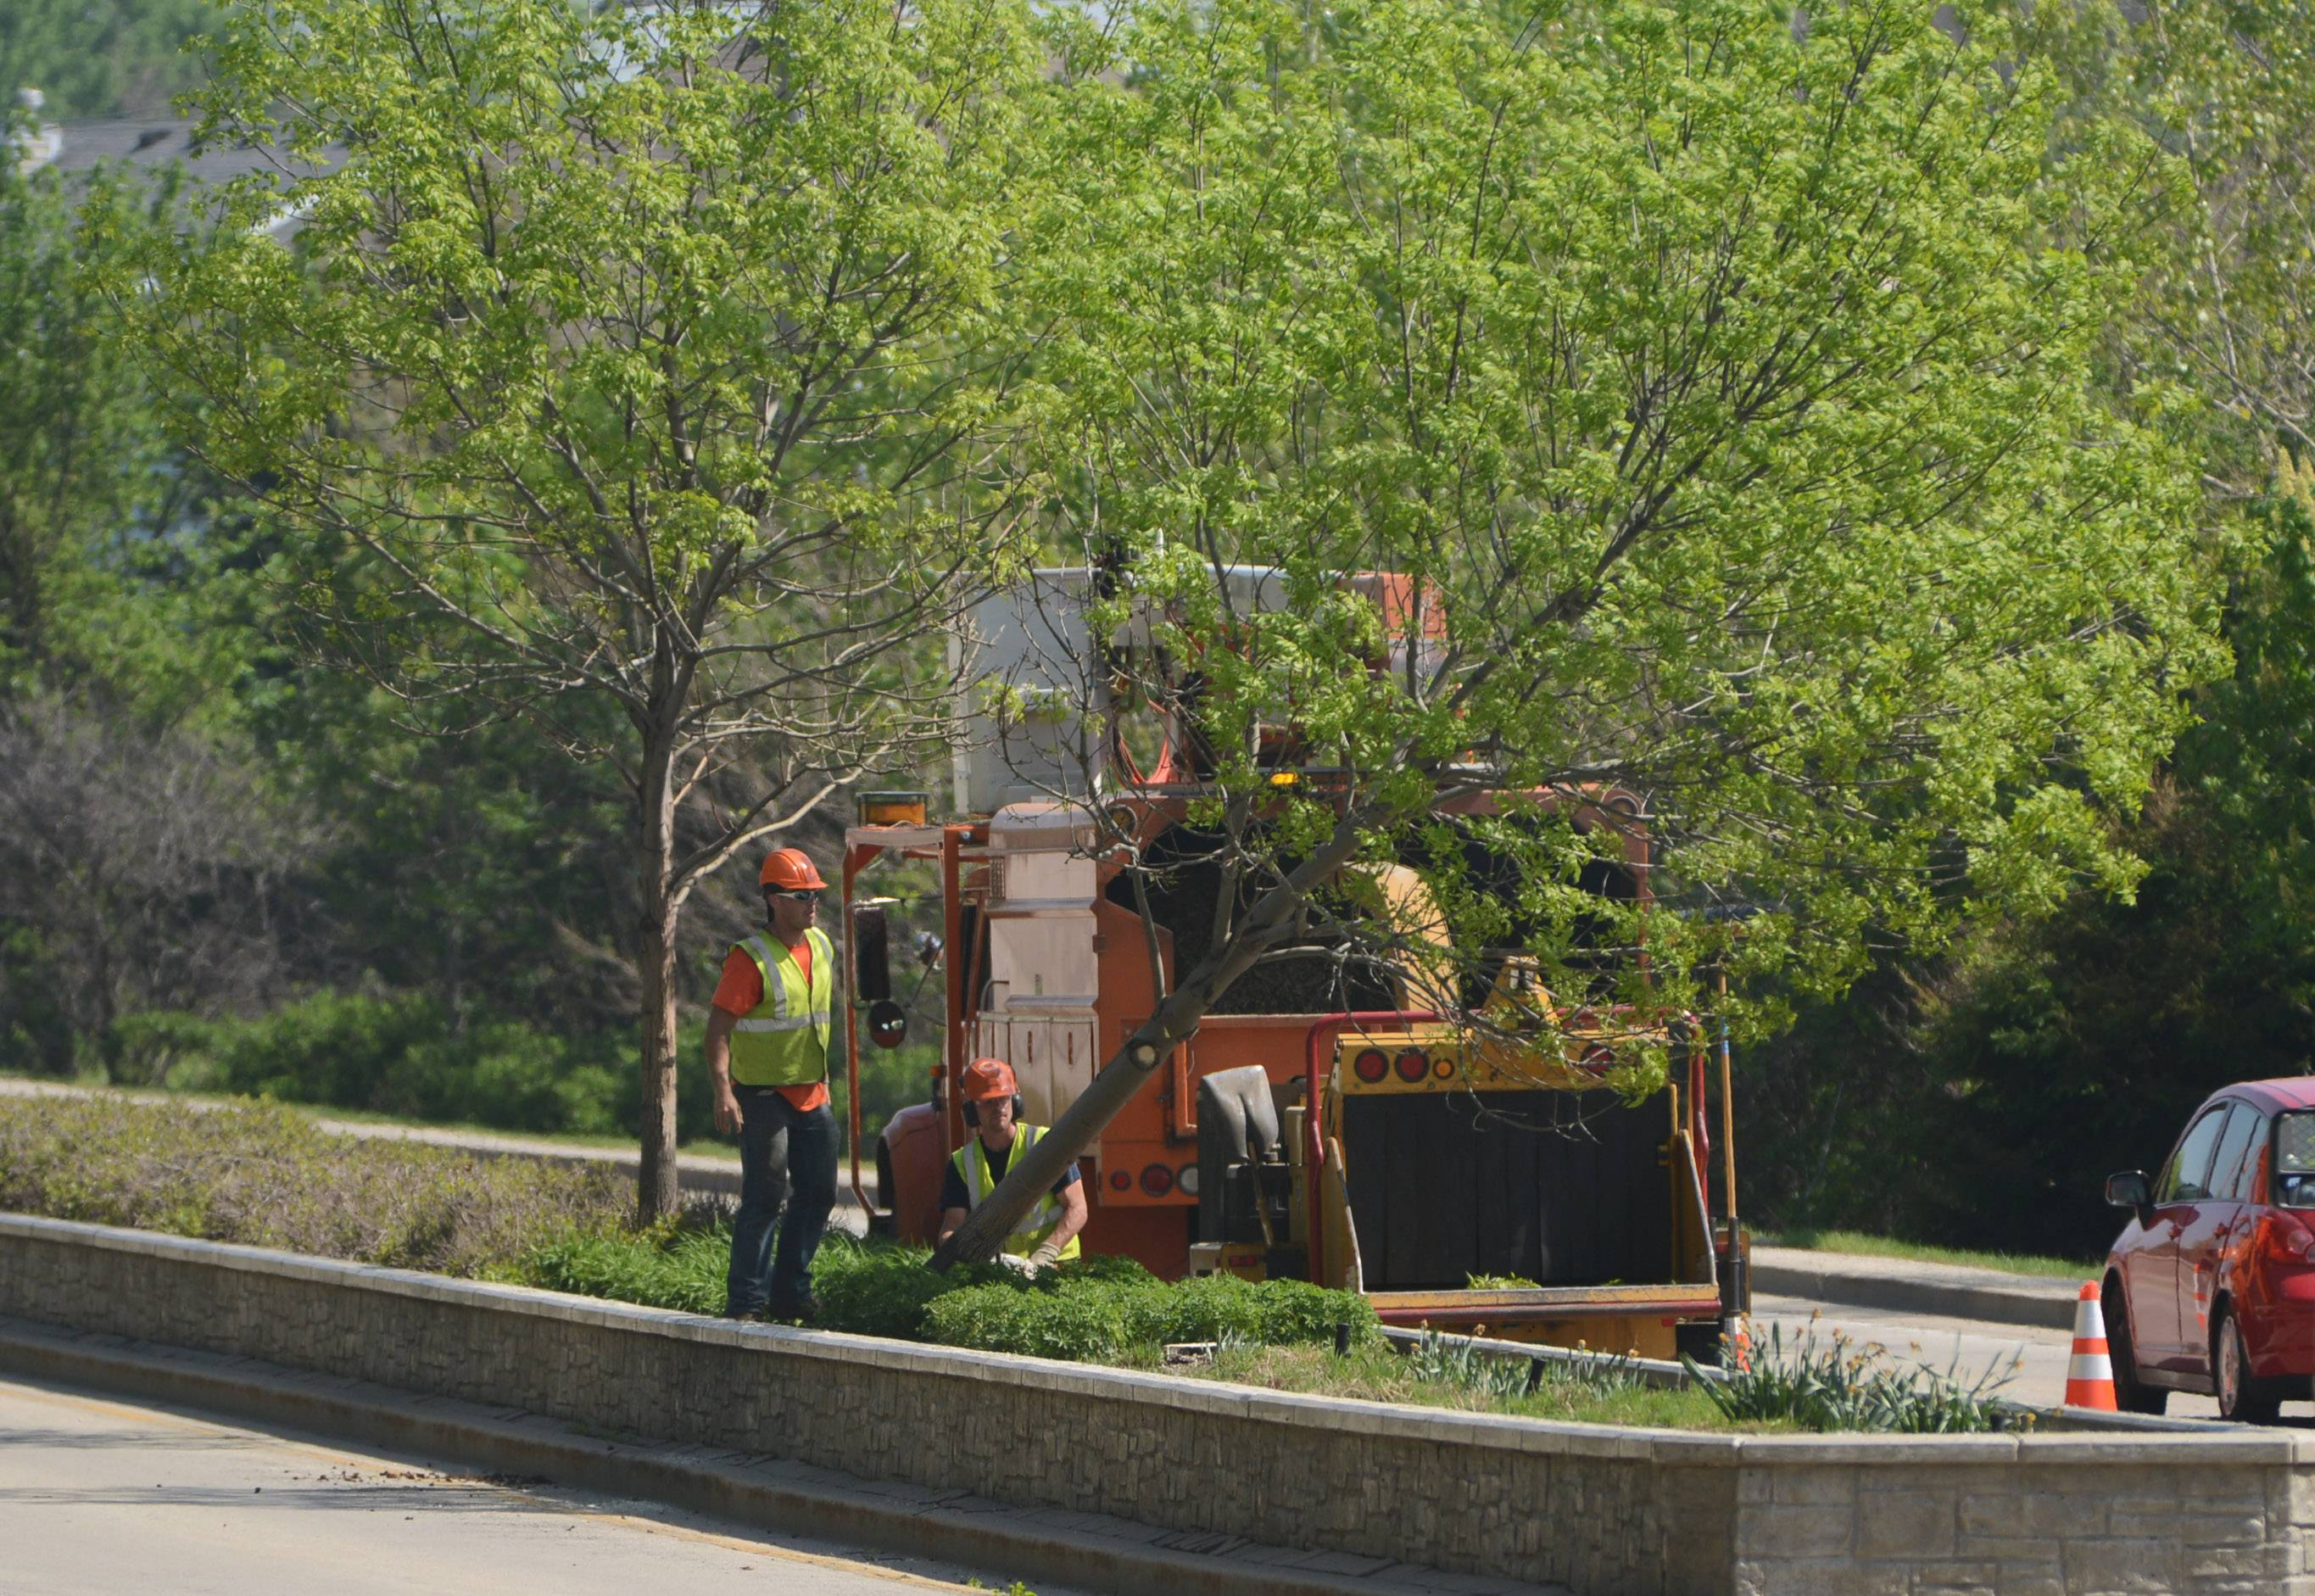 Vernon Hills crews on Tuesday removed ash trees from the planter on Butterfield Road as part of its continuing battle against the emerald ash borer.